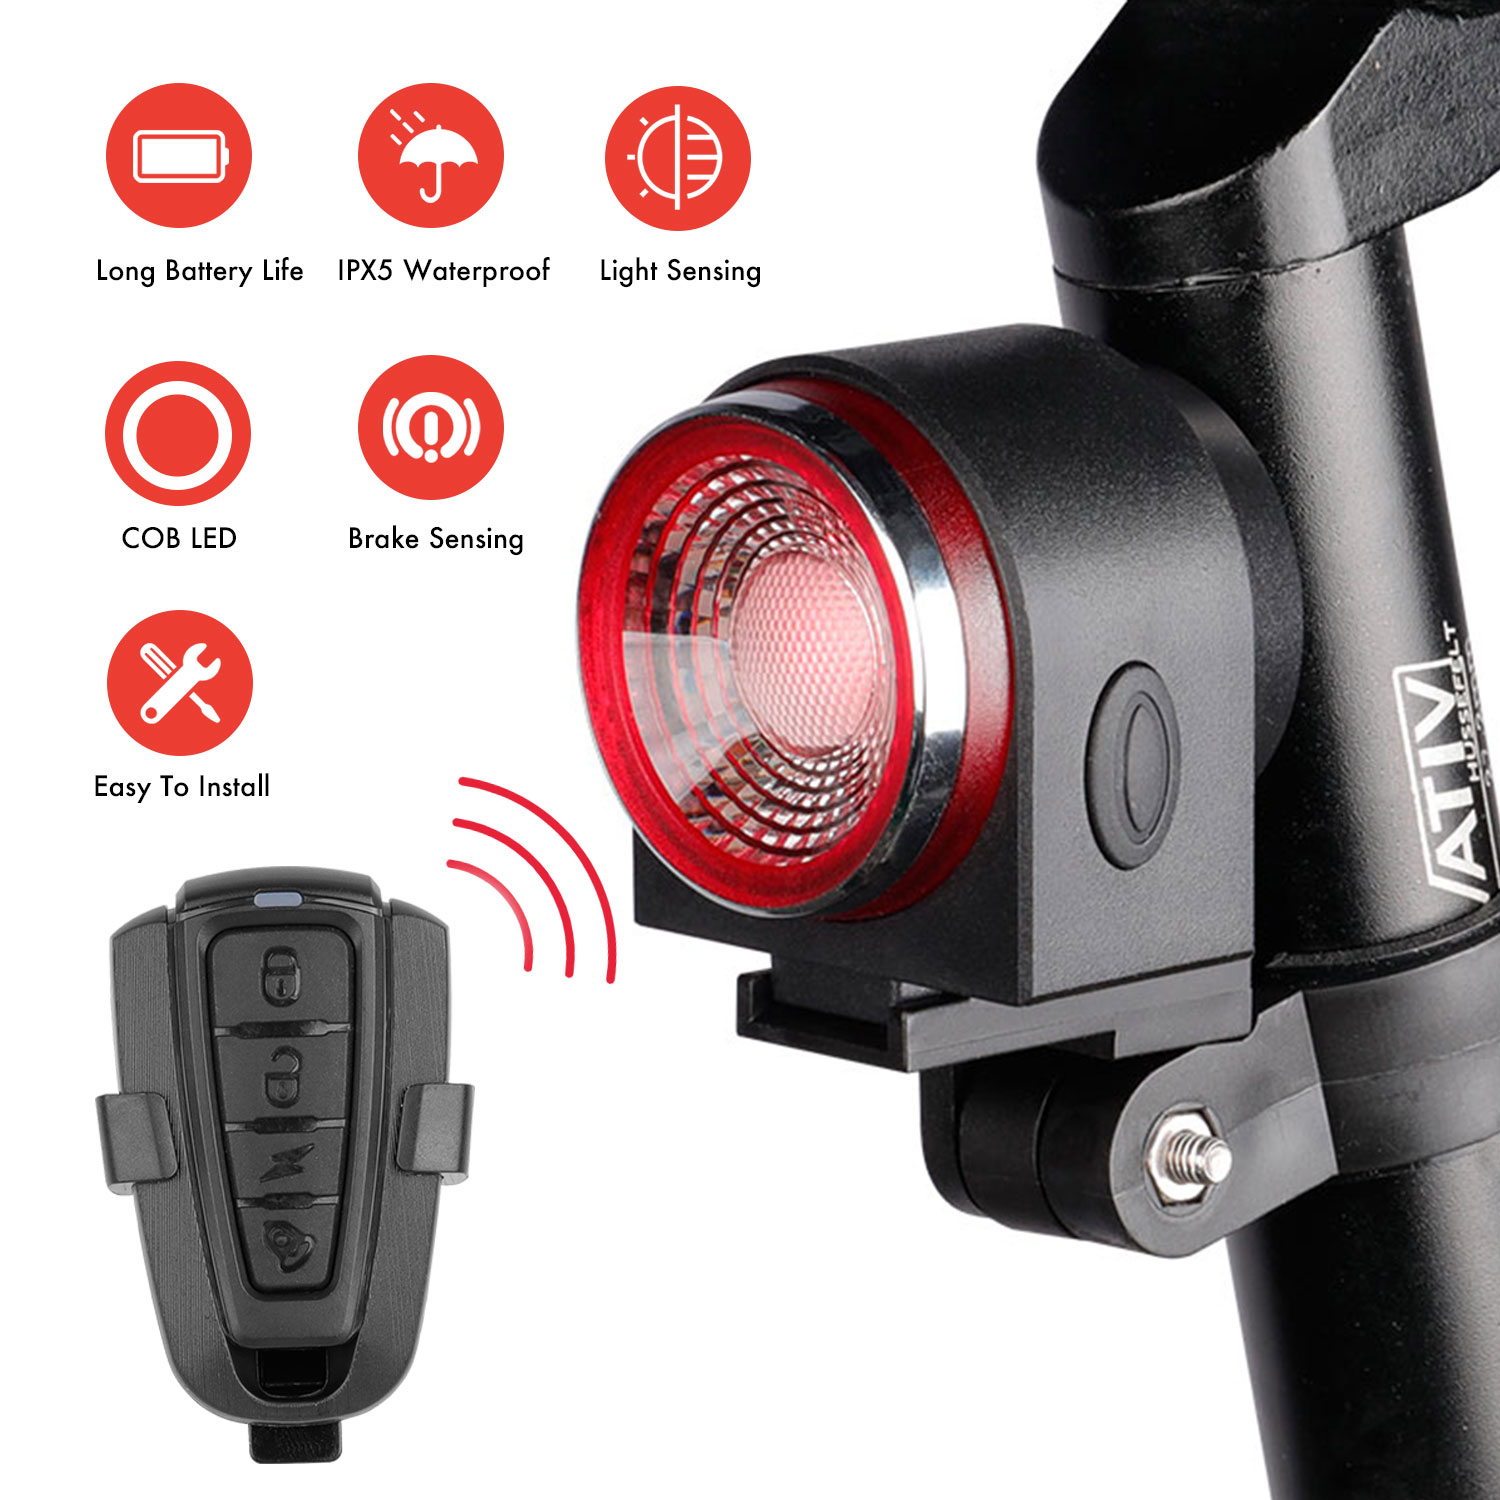 A8 IPX5 Waterproof USB Charging Tail Light for Bicycle Remote Control Smart Bike LED Light Burglar Alarm Warning Travel Security